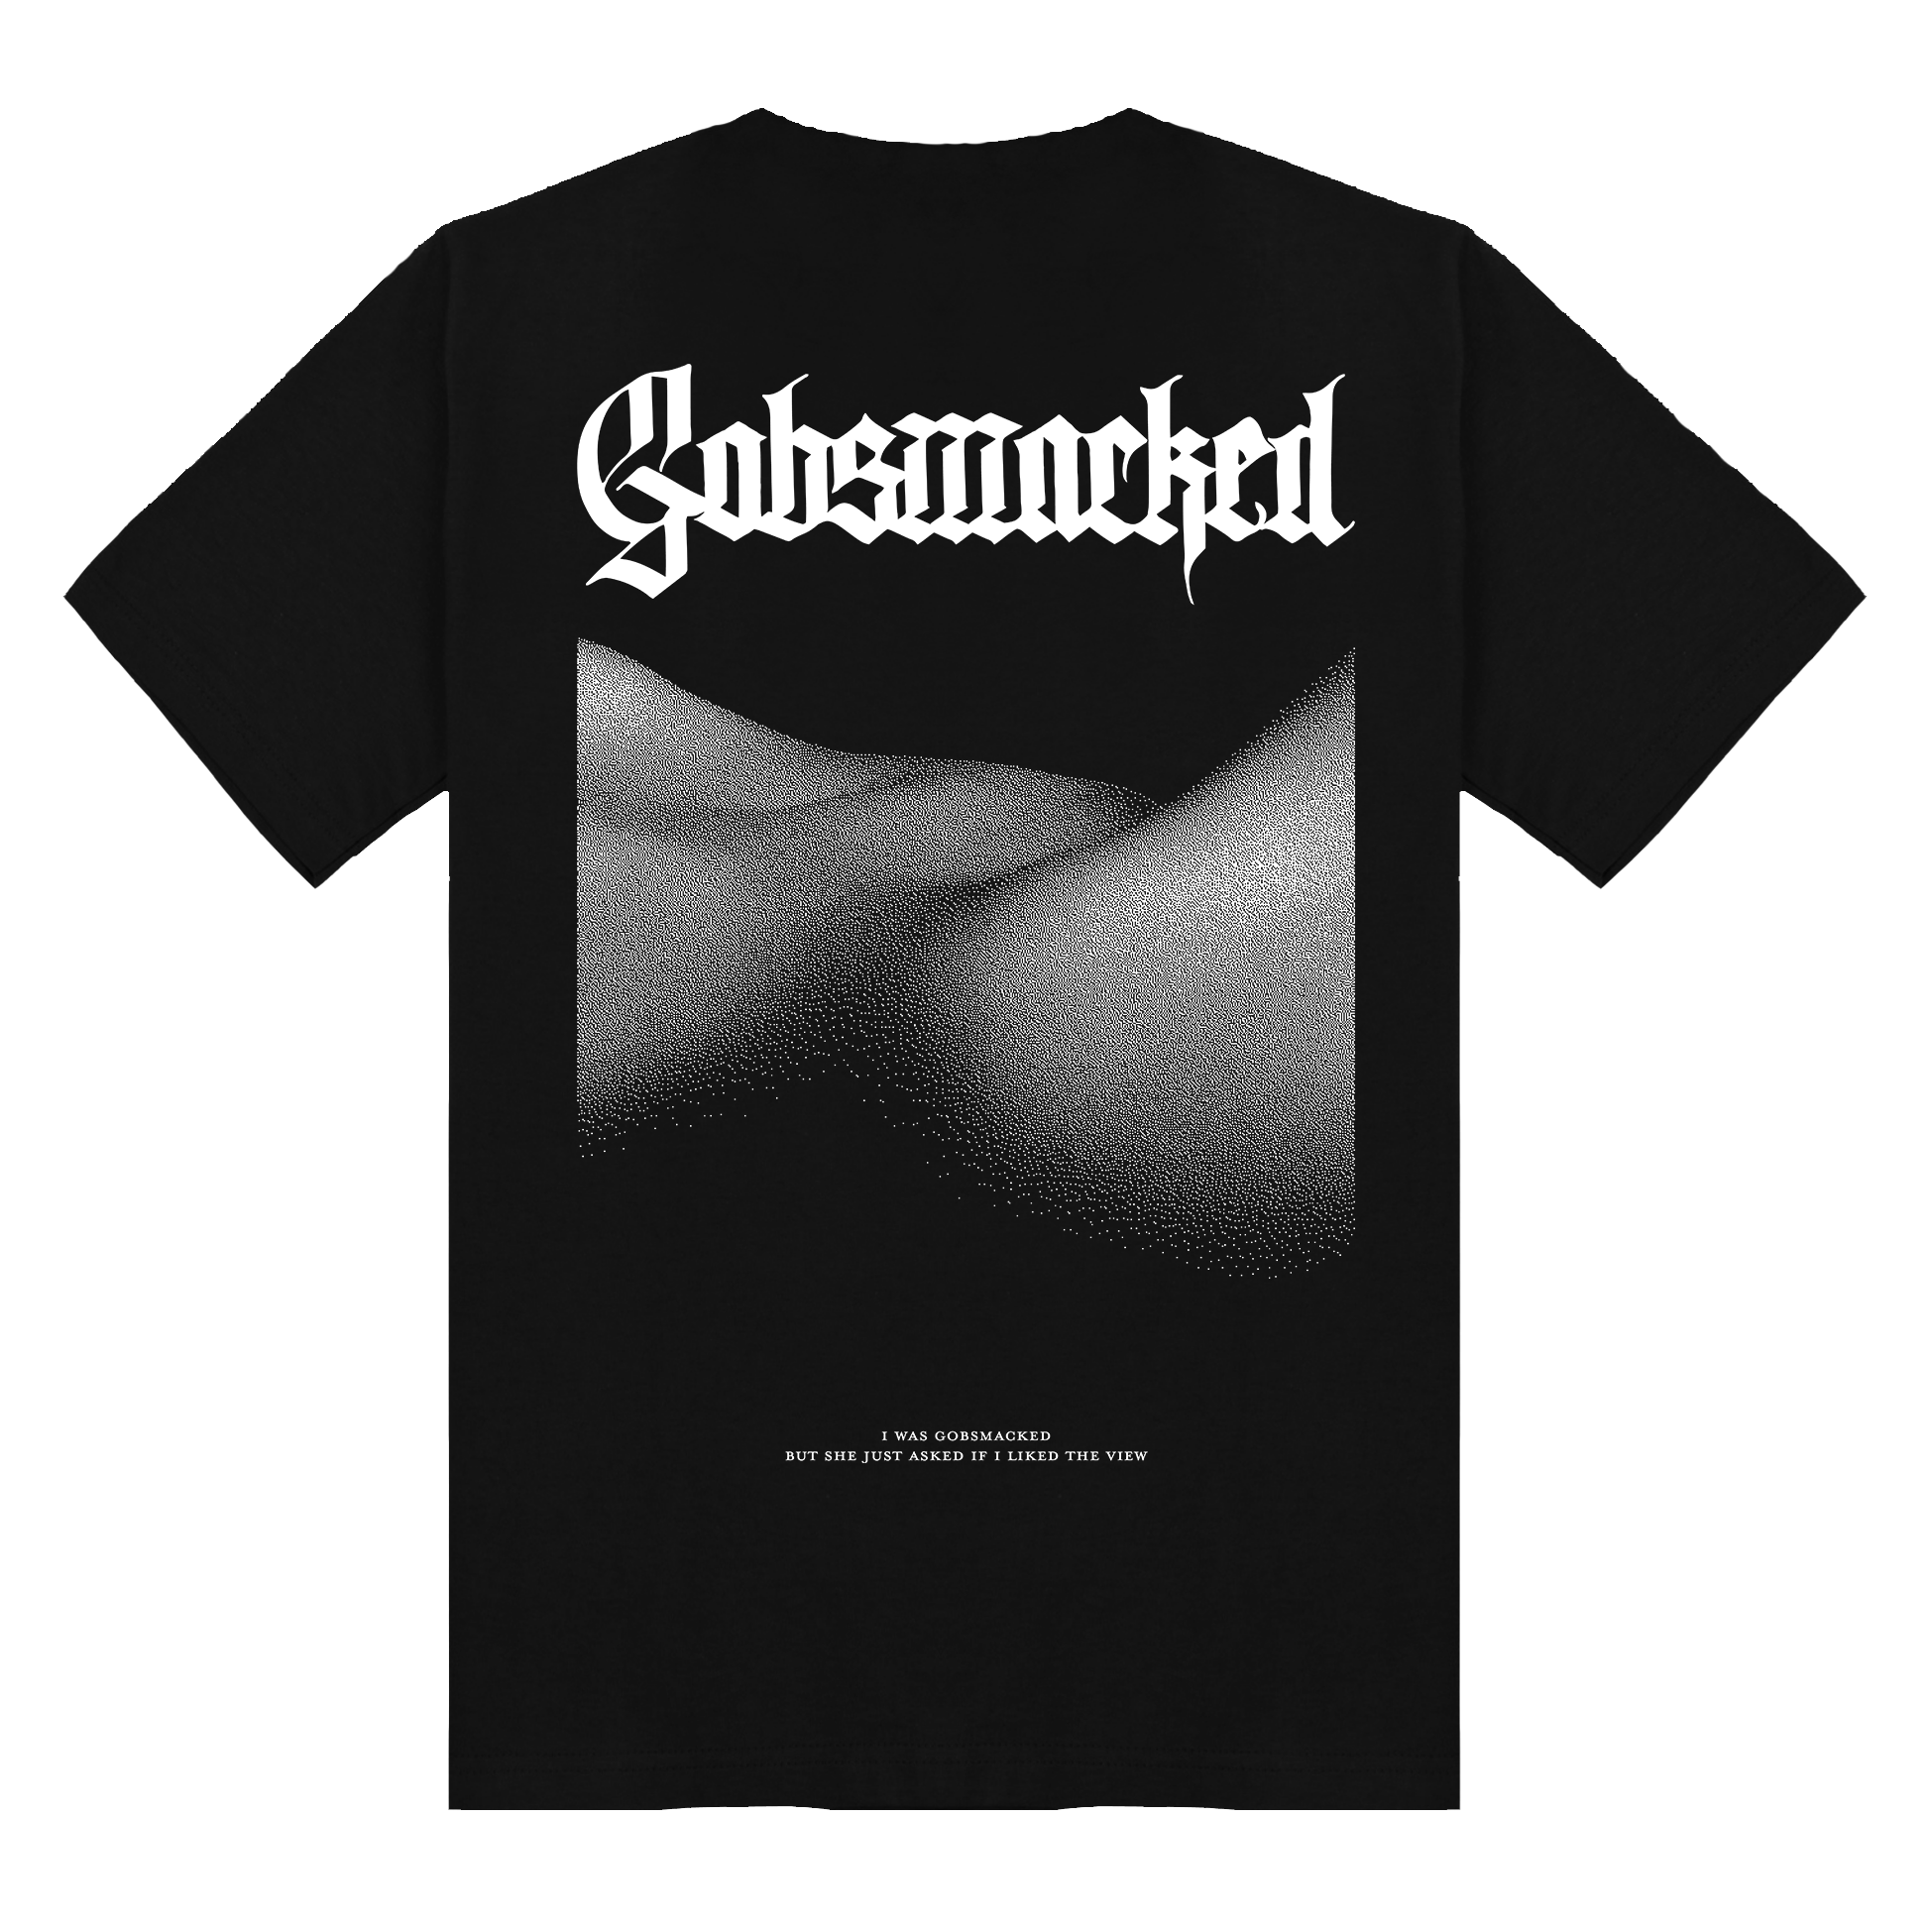 Gobsmacked tee by CB.93